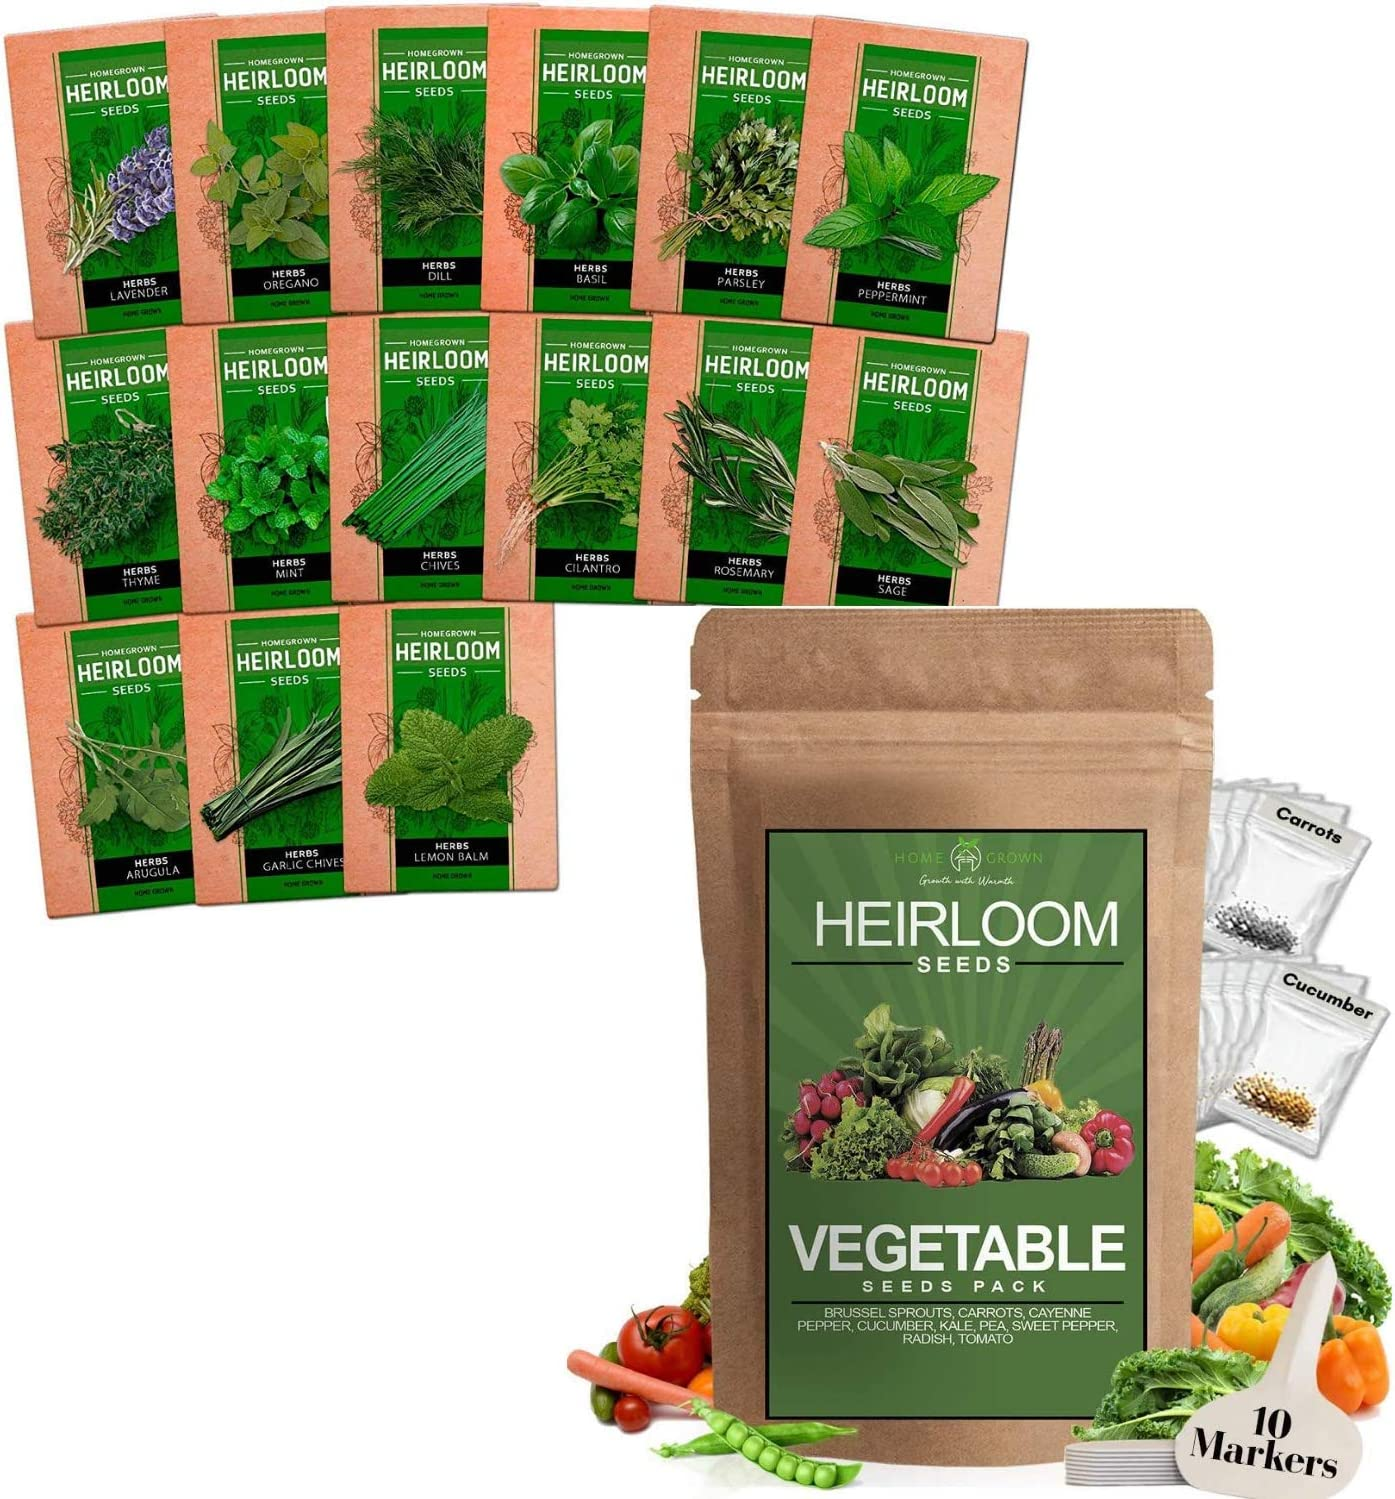 Vegetable and Herb Seeds Vault - [Bundle] Heirloom and Non GMO Seeds for Planting Indoors or Outdoors